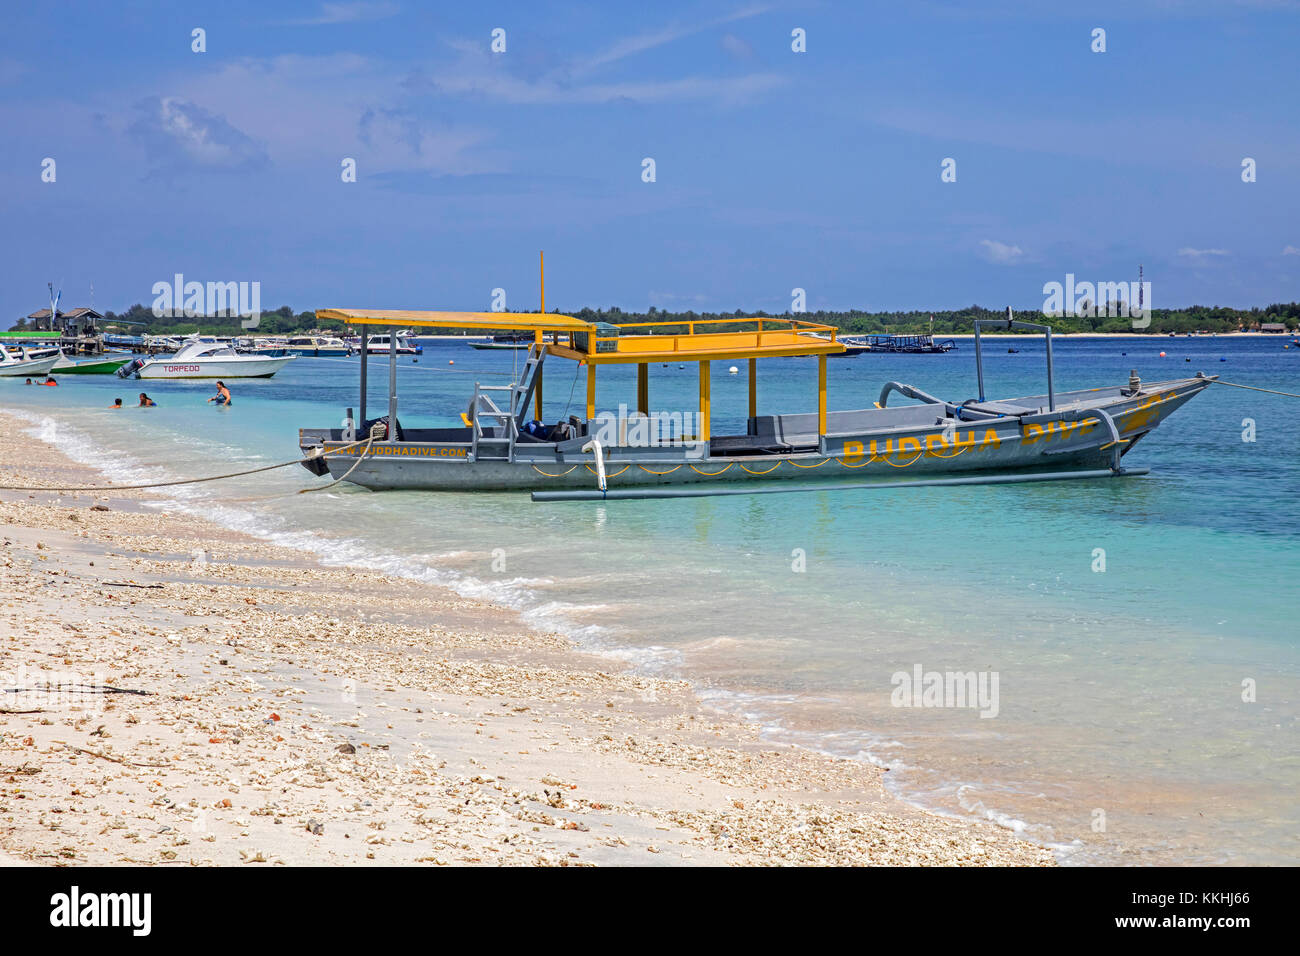 Outrigger tourist boat on the island Gili Trawangan, largest of Lombok's Gili Islands, Indonesia - Stock Image